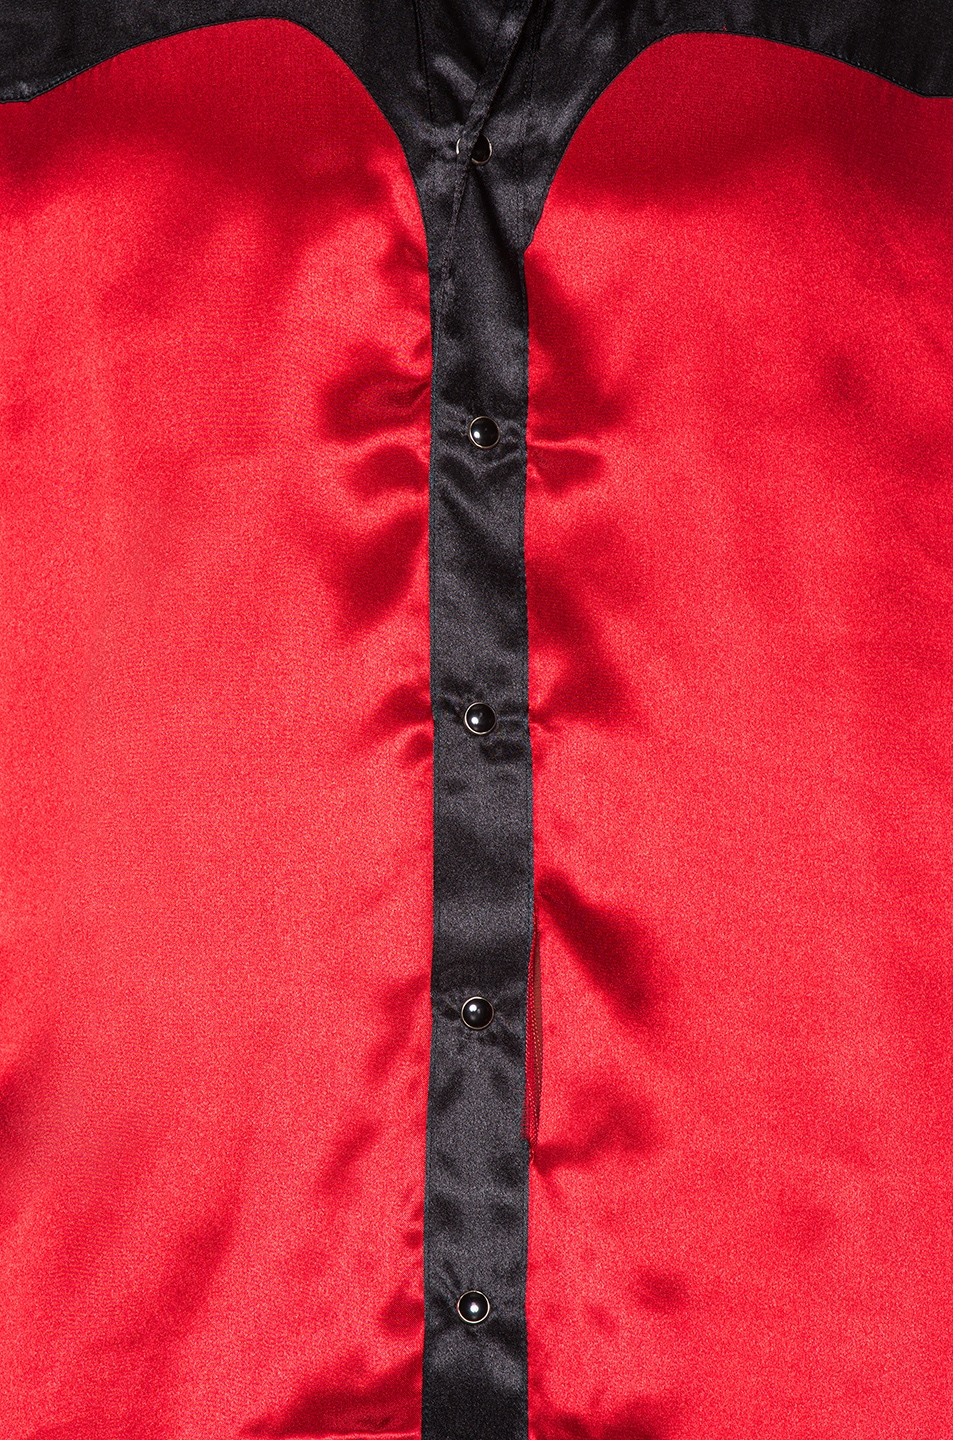 Image 5 of SSS World Corp Western Shirt in Black & Red